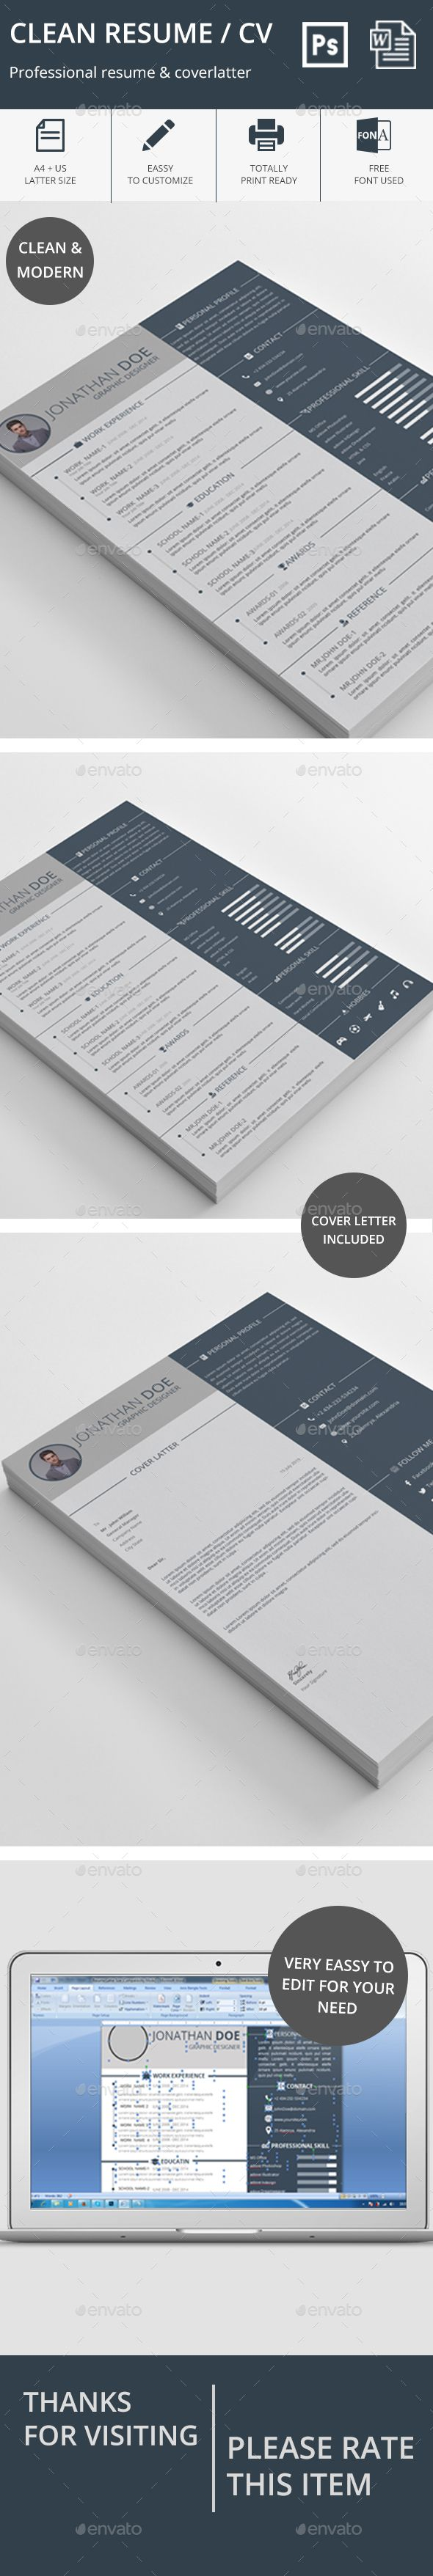 clean resume resume cleanses and stationery clean resume resumes stationery here graphicriver net